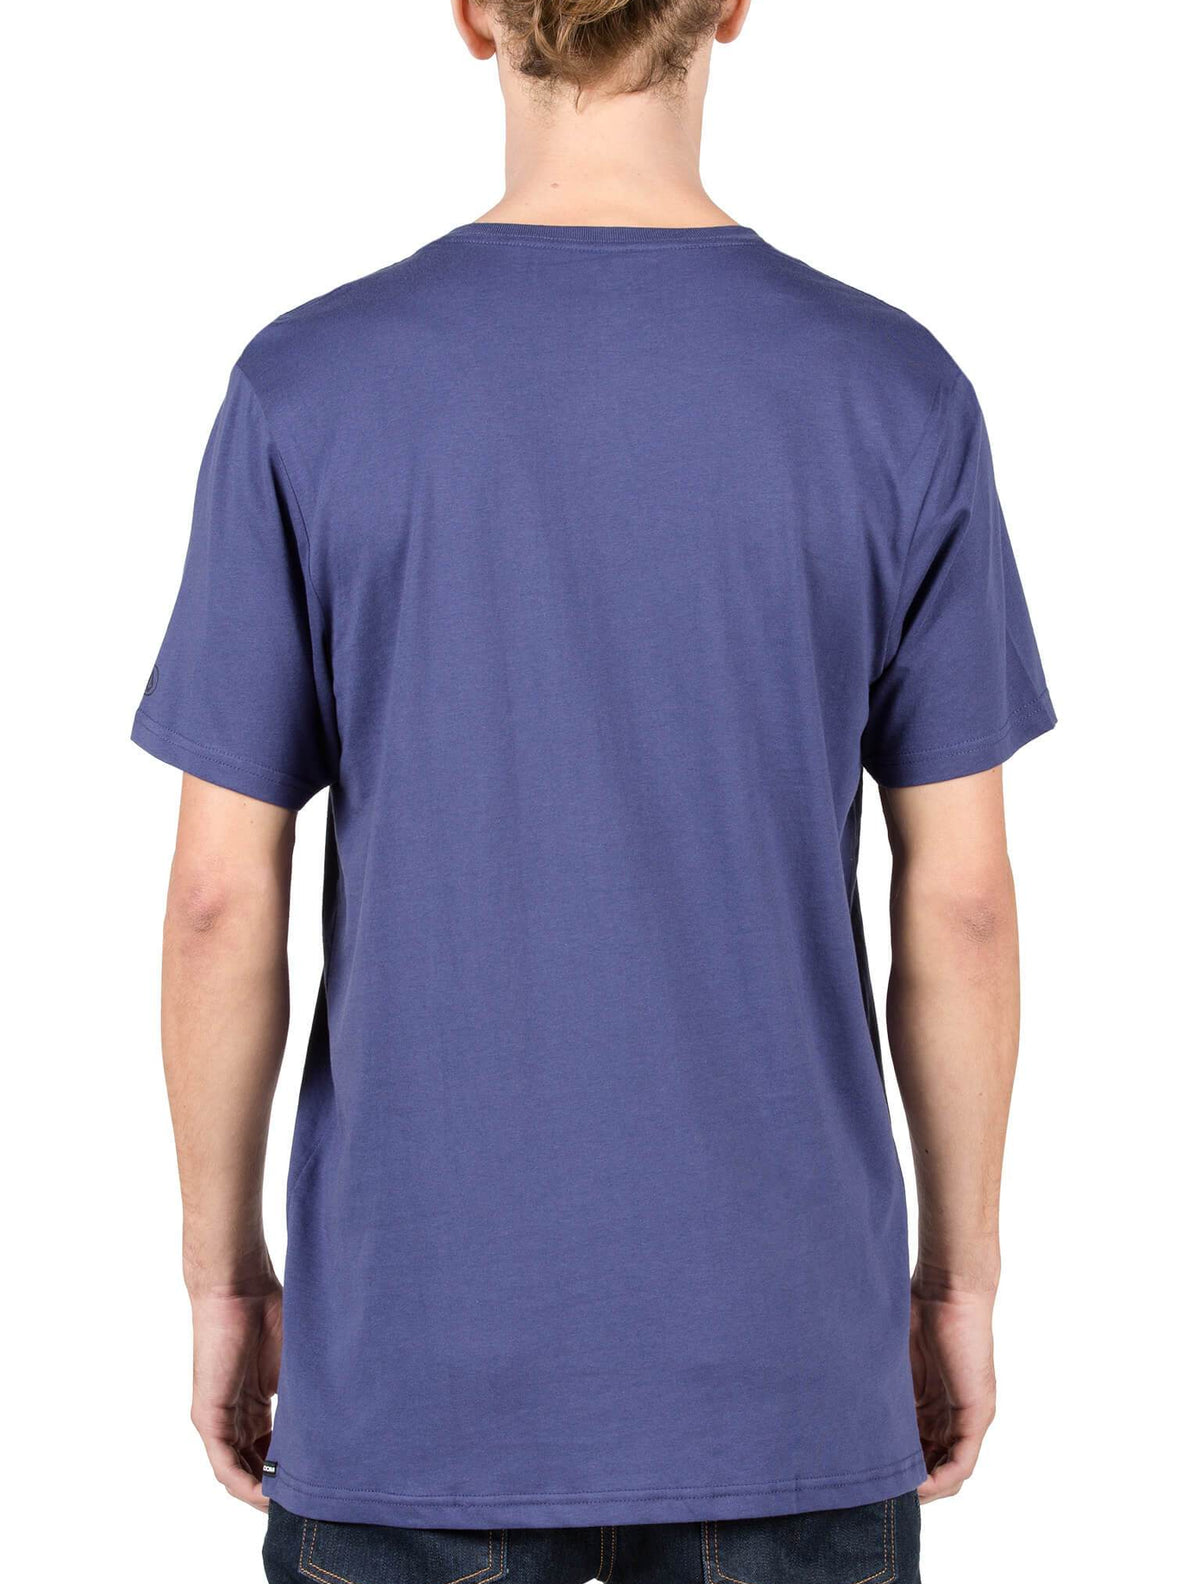 Solid Ss Tee In Blue Plum, Back View